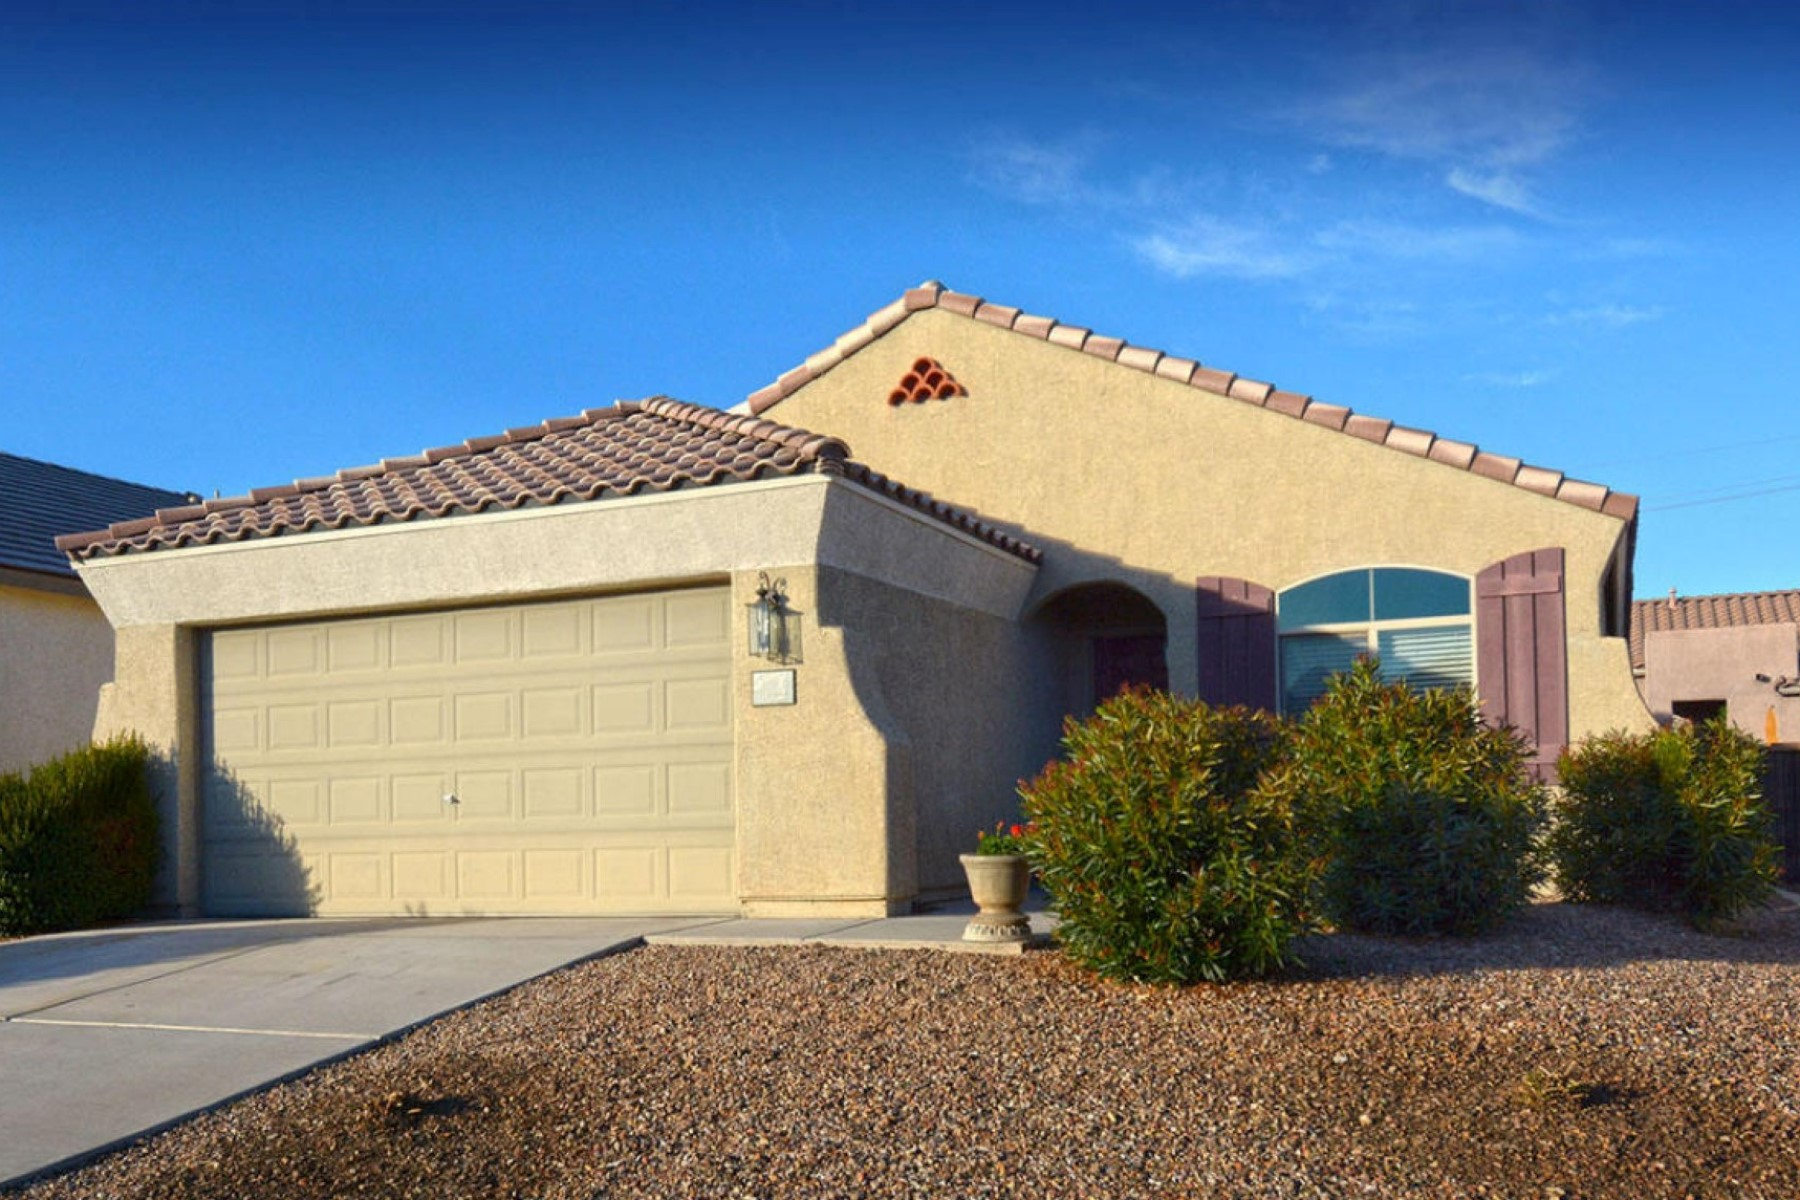 Vivienda unifamiliar por un Venta en Rare 4 Bedroom Pulte Built Residence In Popular Serenata 112 S Laurelton Way Tucson, Arizona 85748 Estados Unidos